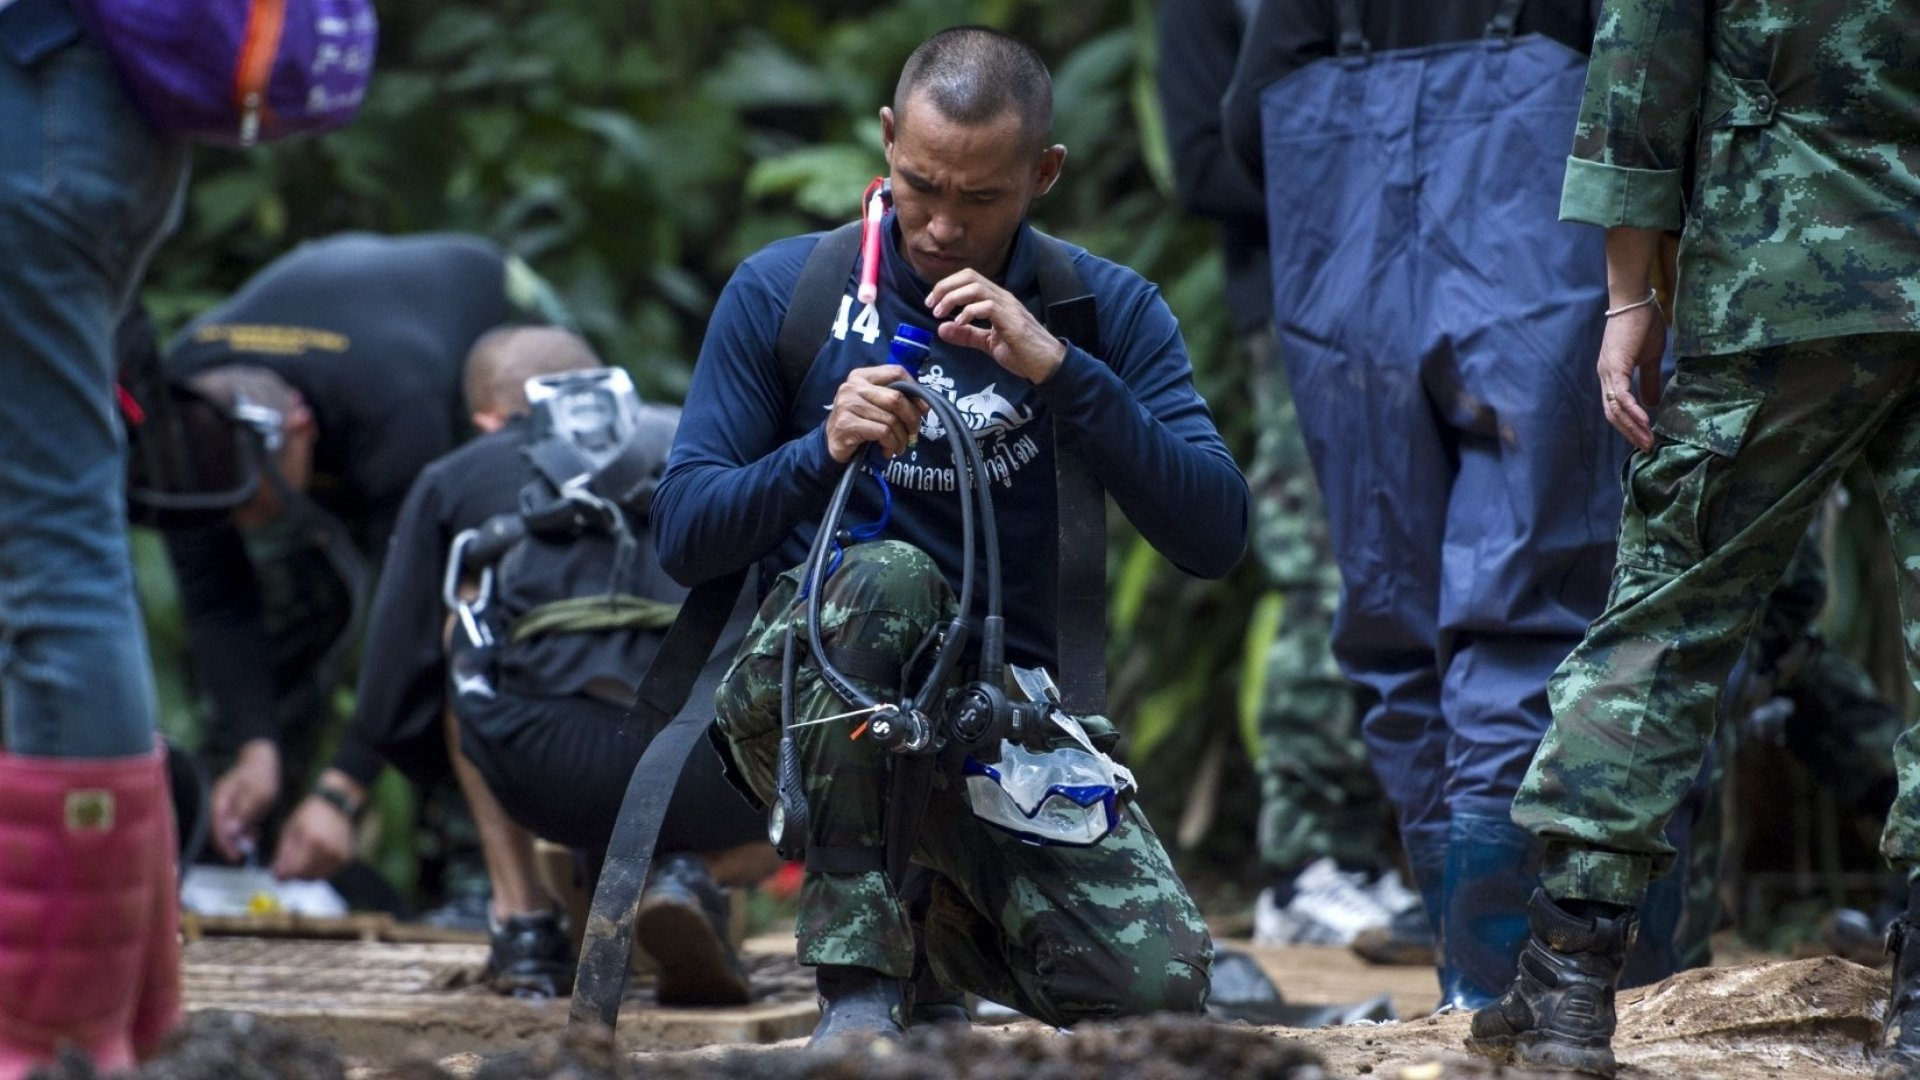 A Thai navy diver prepares during rescue operations for 12 boys and their coach trapped in Tham Luang Cave.